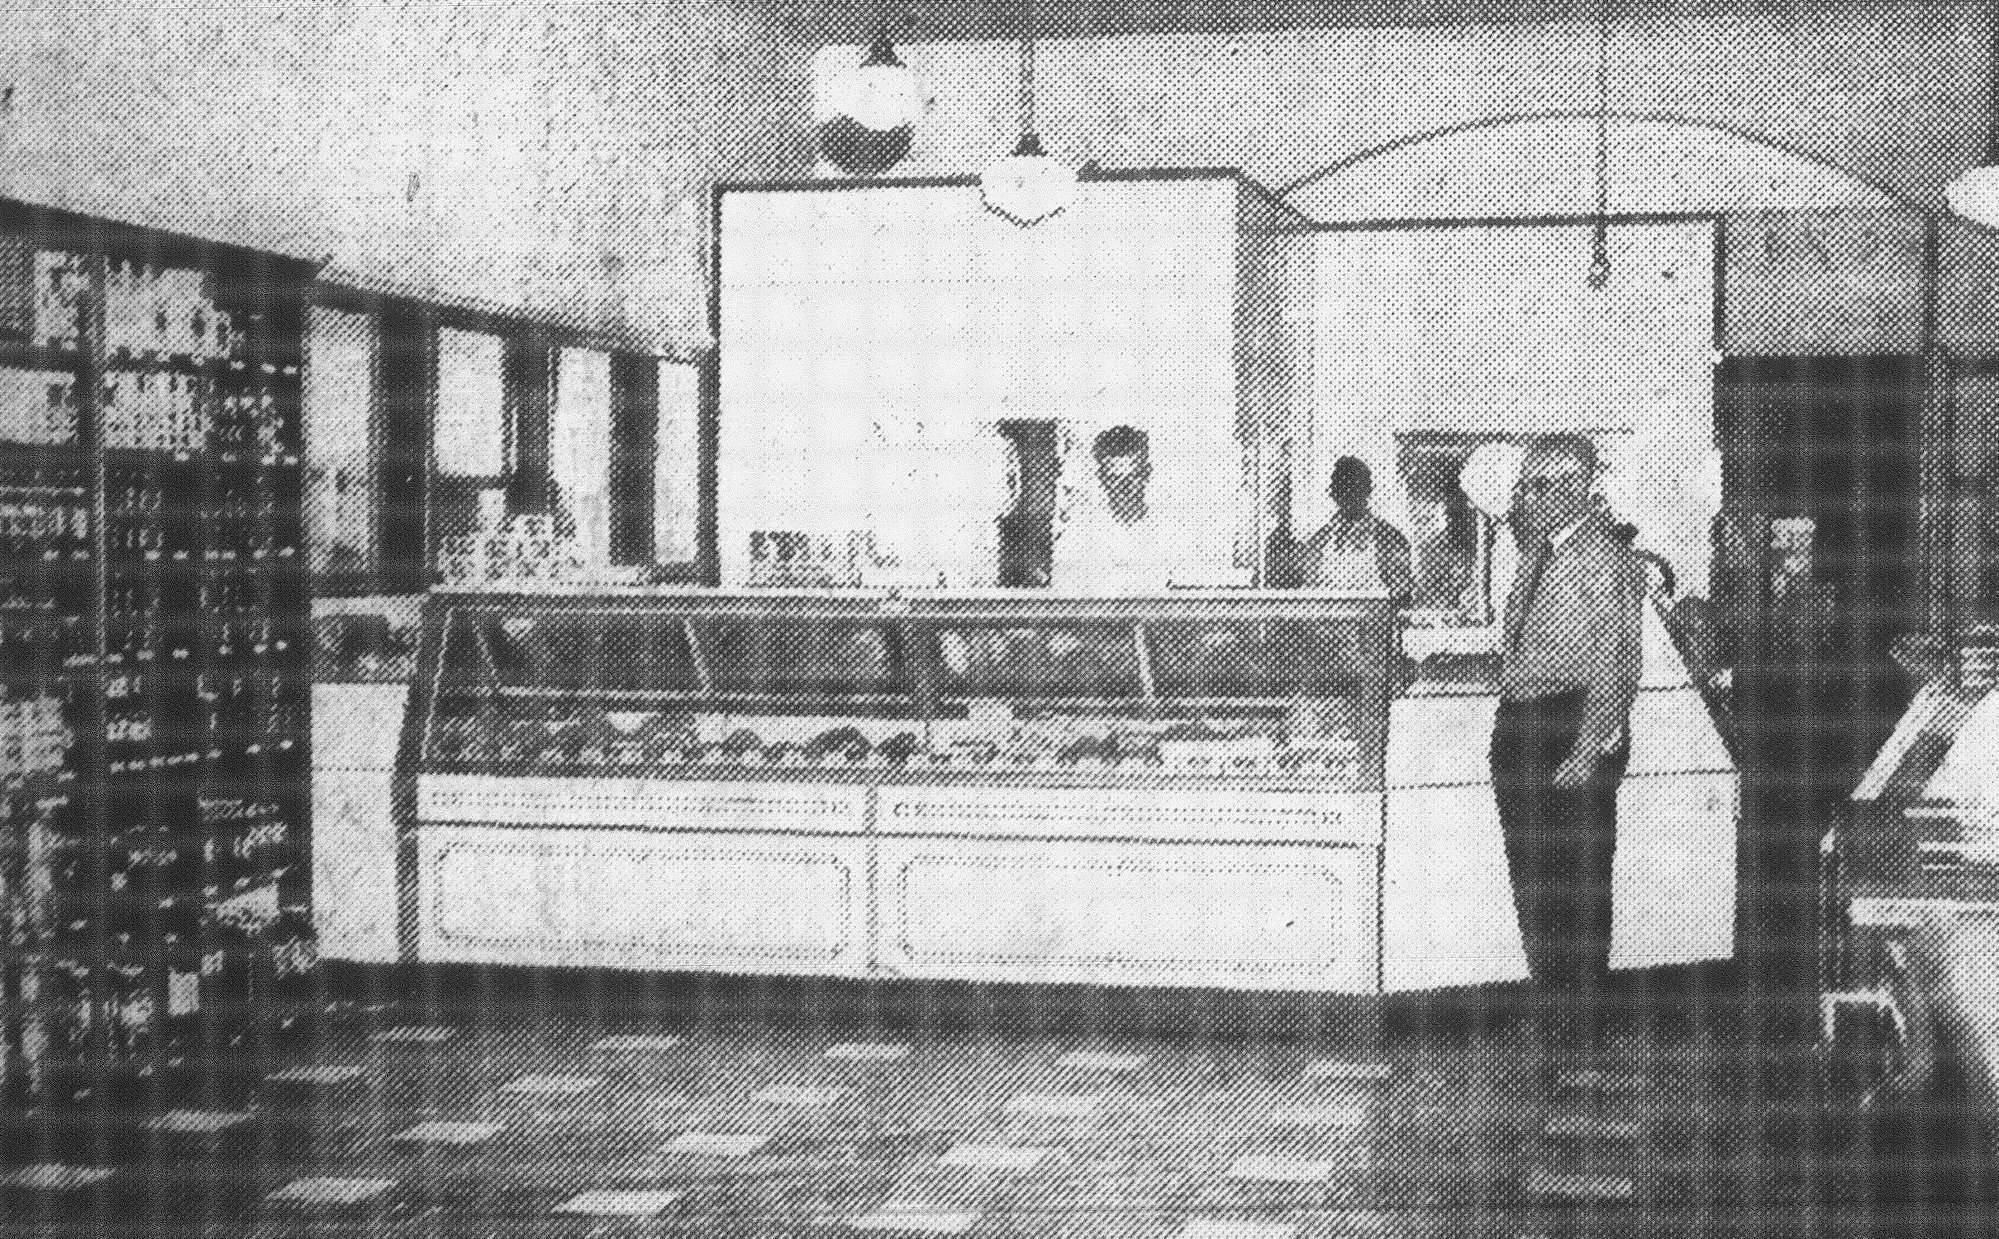 "The meat market at H.J. Commins' remodeled store featured quality meats and built up a large business after it opened. Standing in front of the display case is H.J. Commins, and behind the case is Norwood ""Buck"" Epperson, meat market manager."